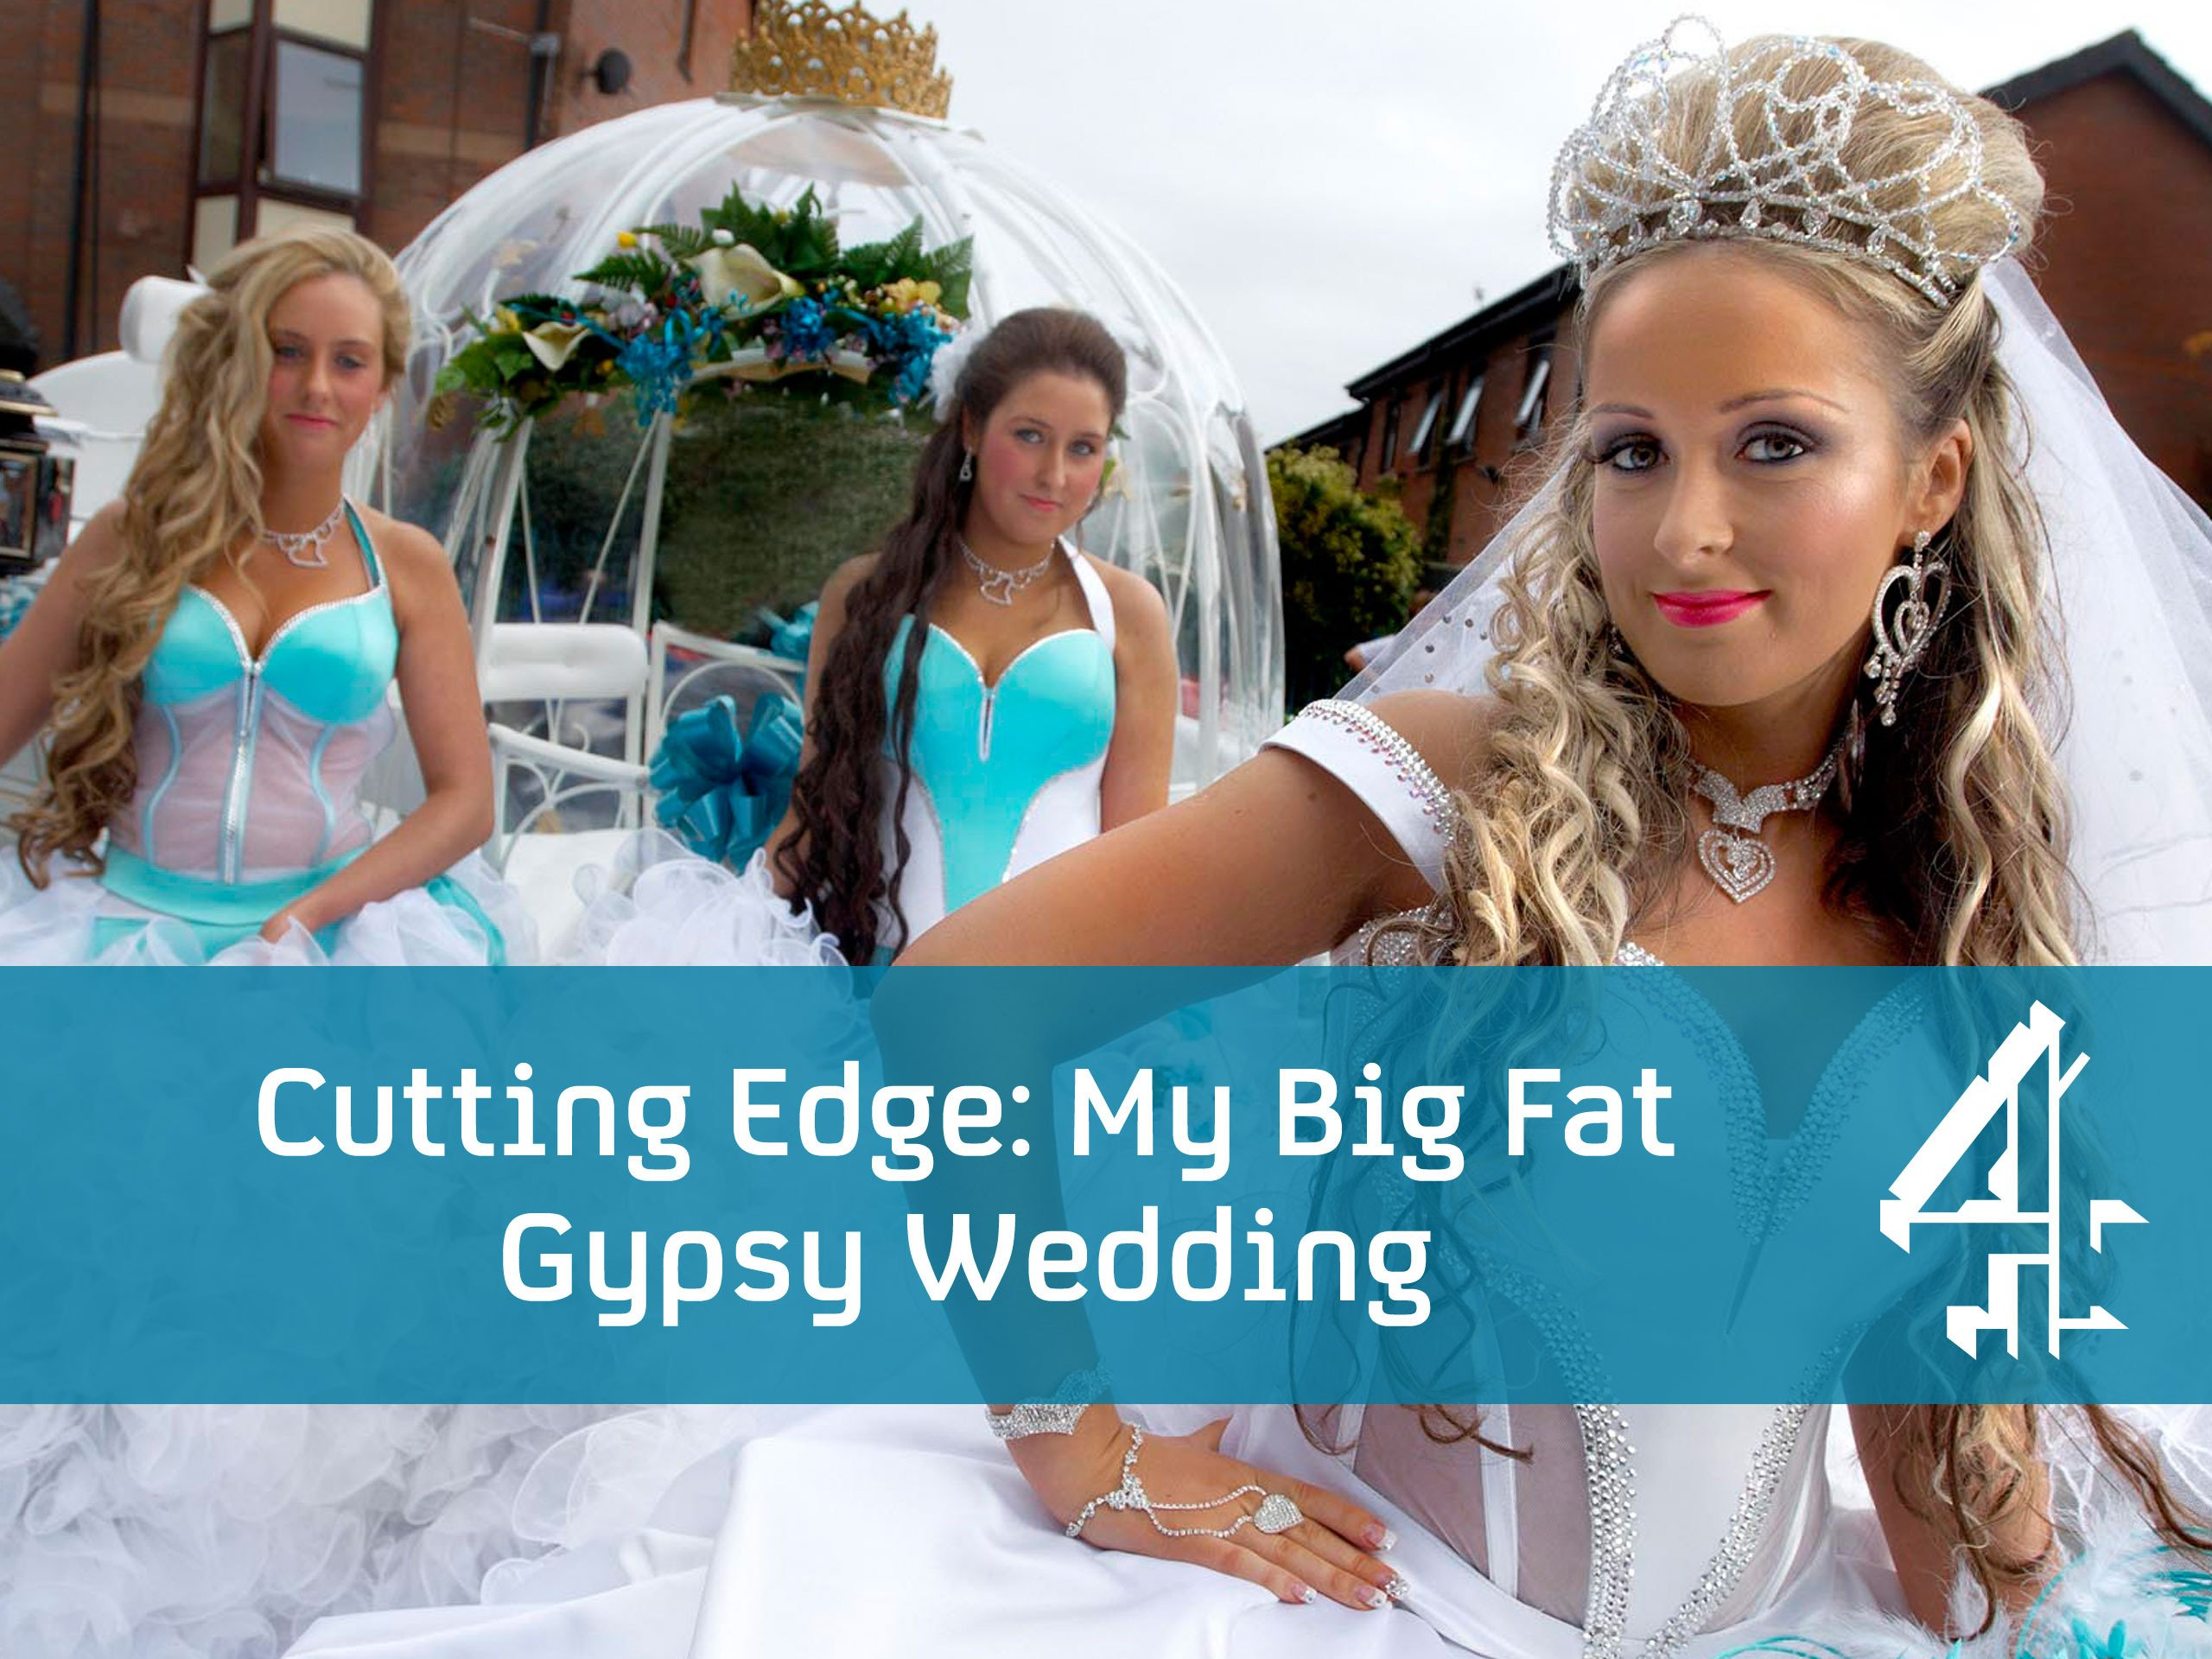 Twin brother stars of reality show My Big Fat Gypsy wedding